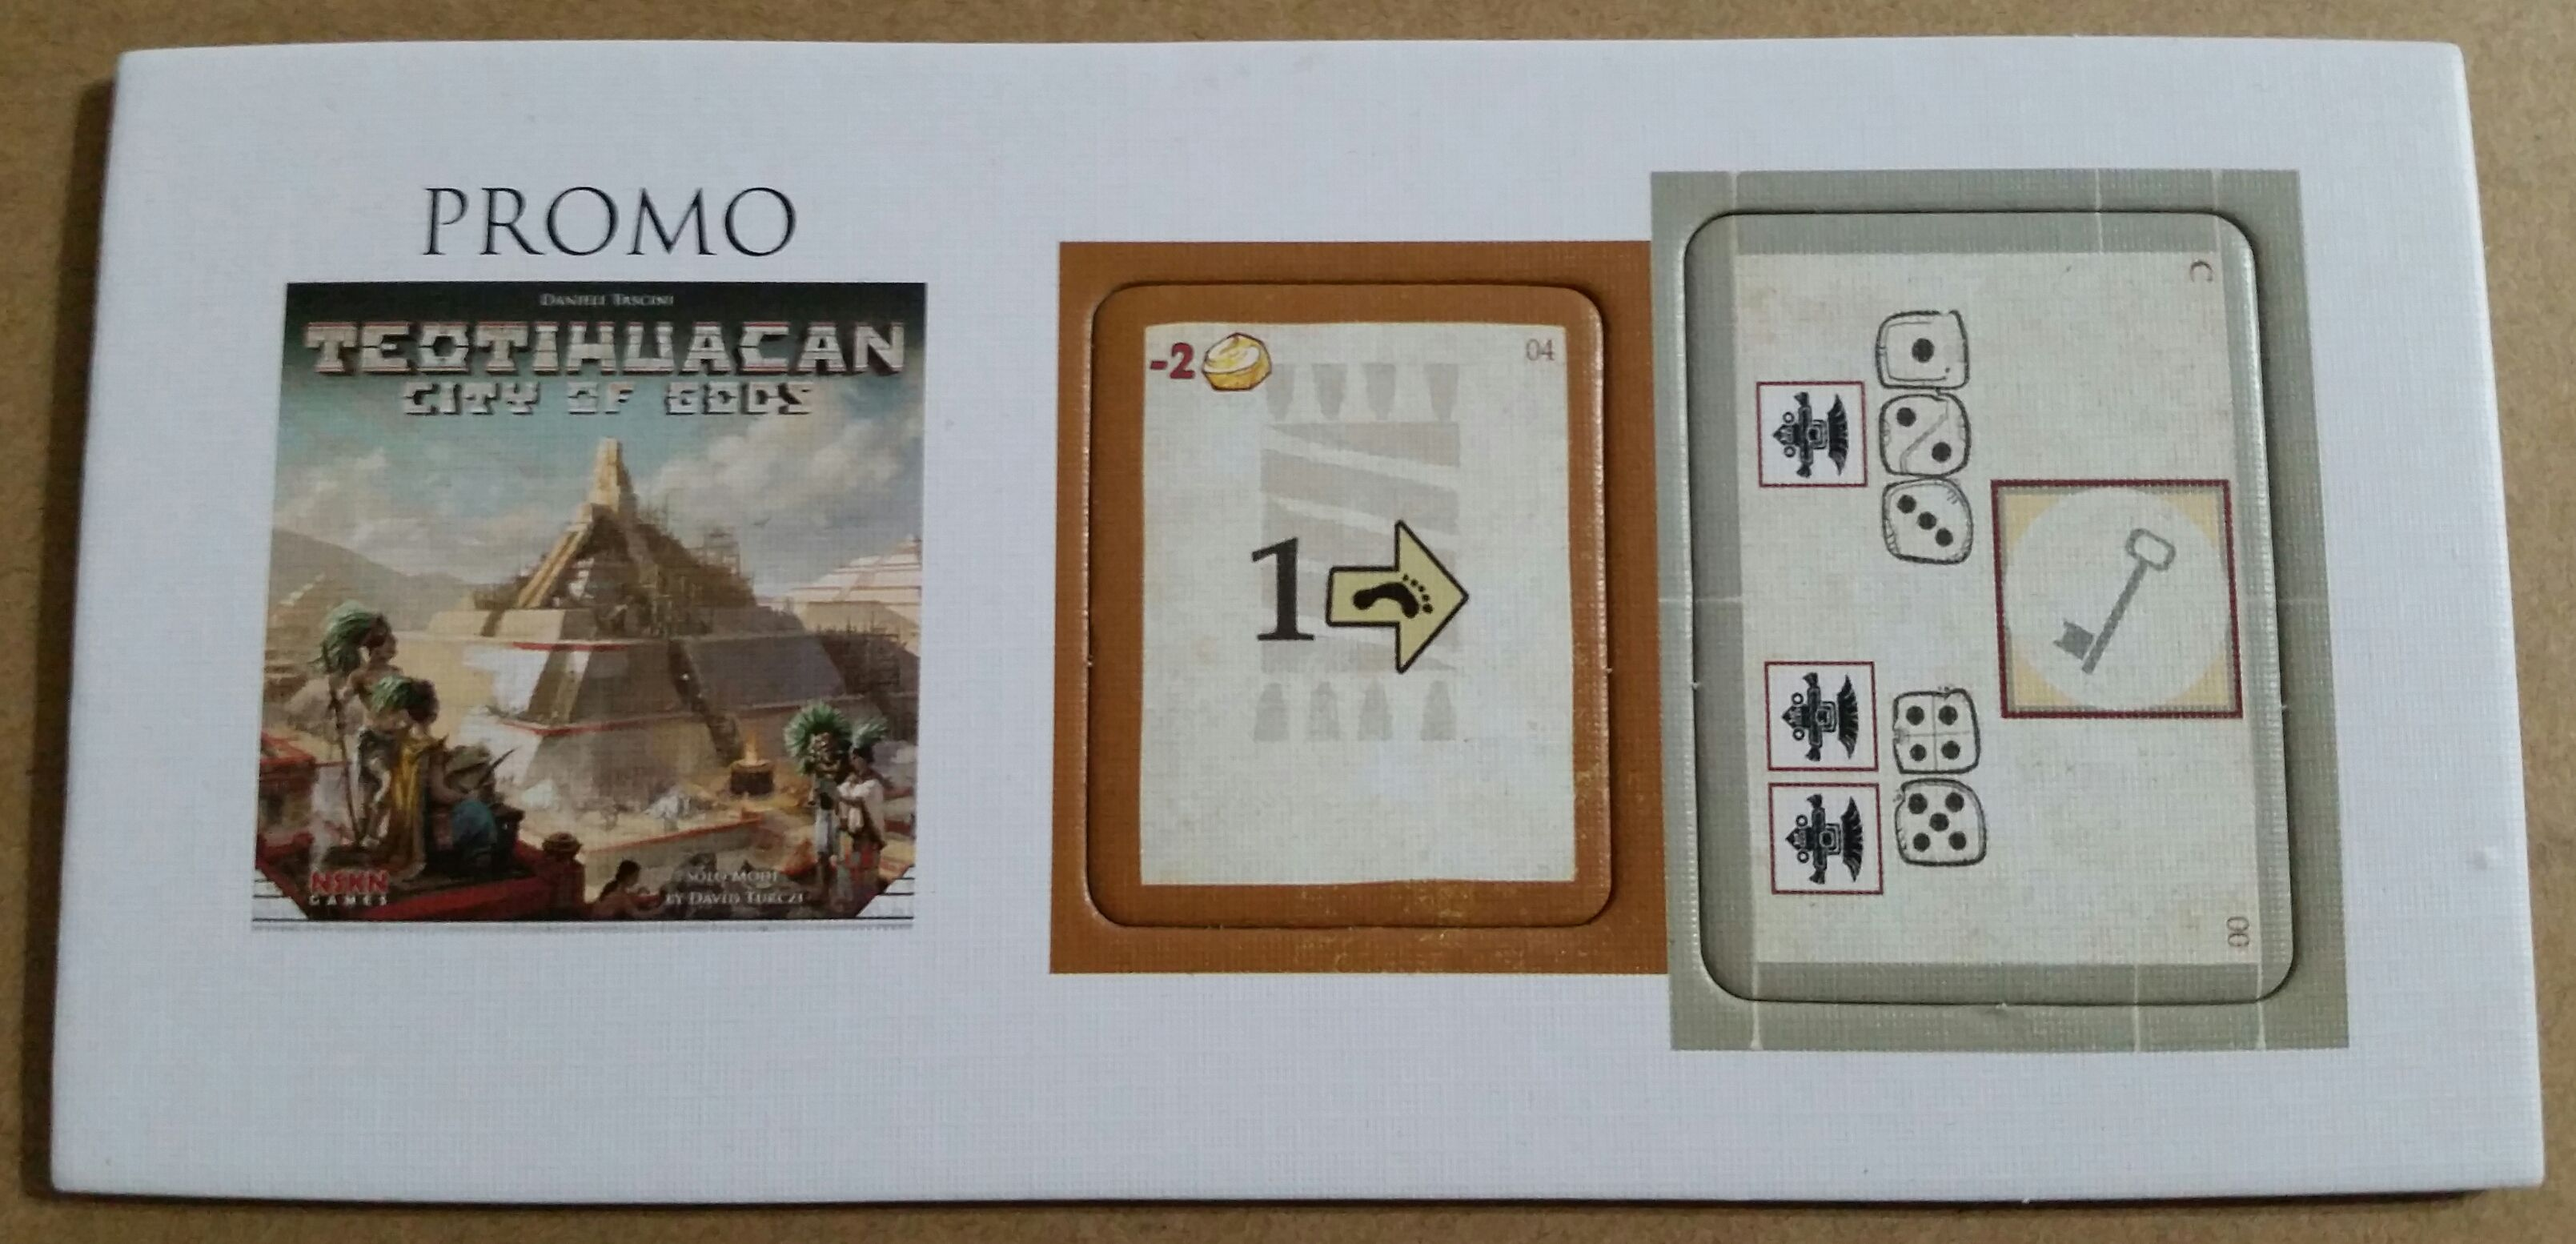 Teotihuacan: City of Gods – Dice Settlers Promo